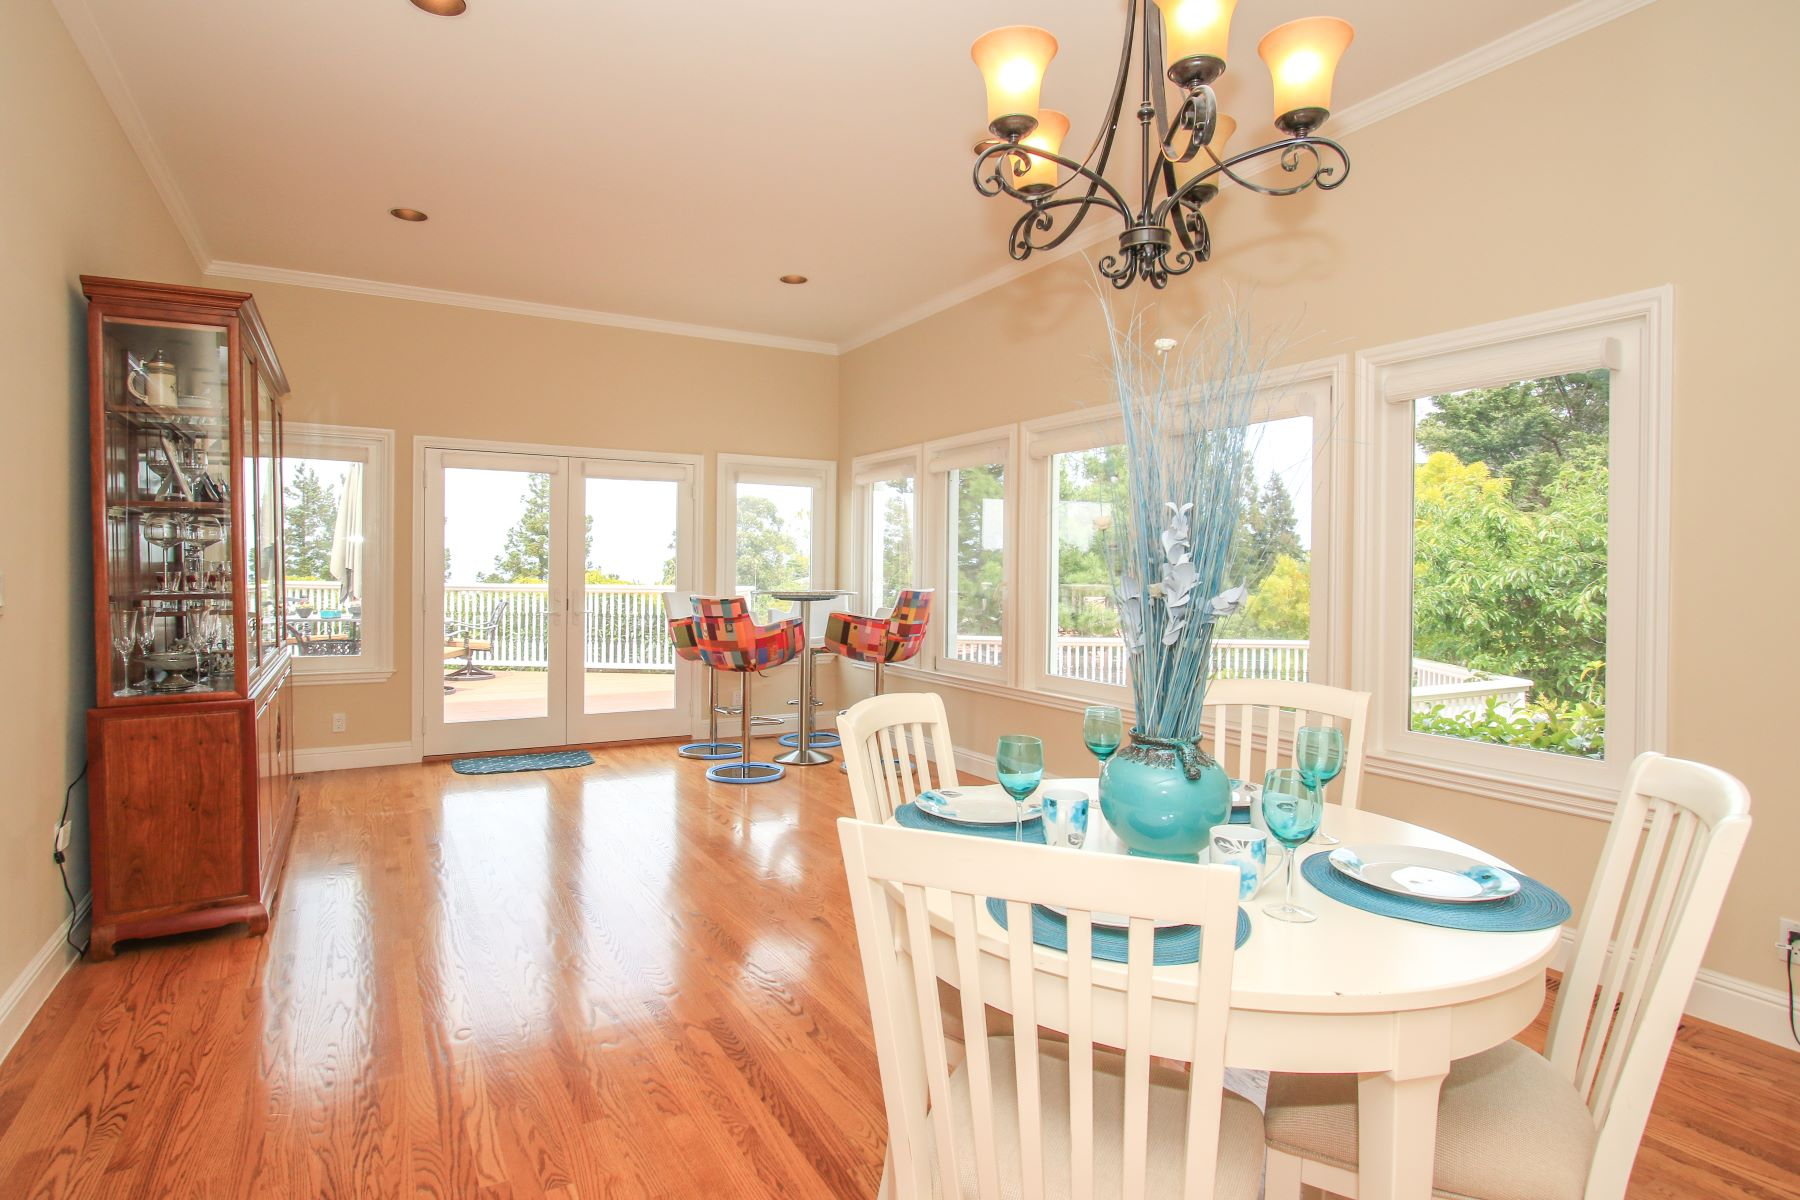 Additional photo for property listing at Stunning Mediterranean Home 75 Eugenia Way Hillsborough, California 94010 United States